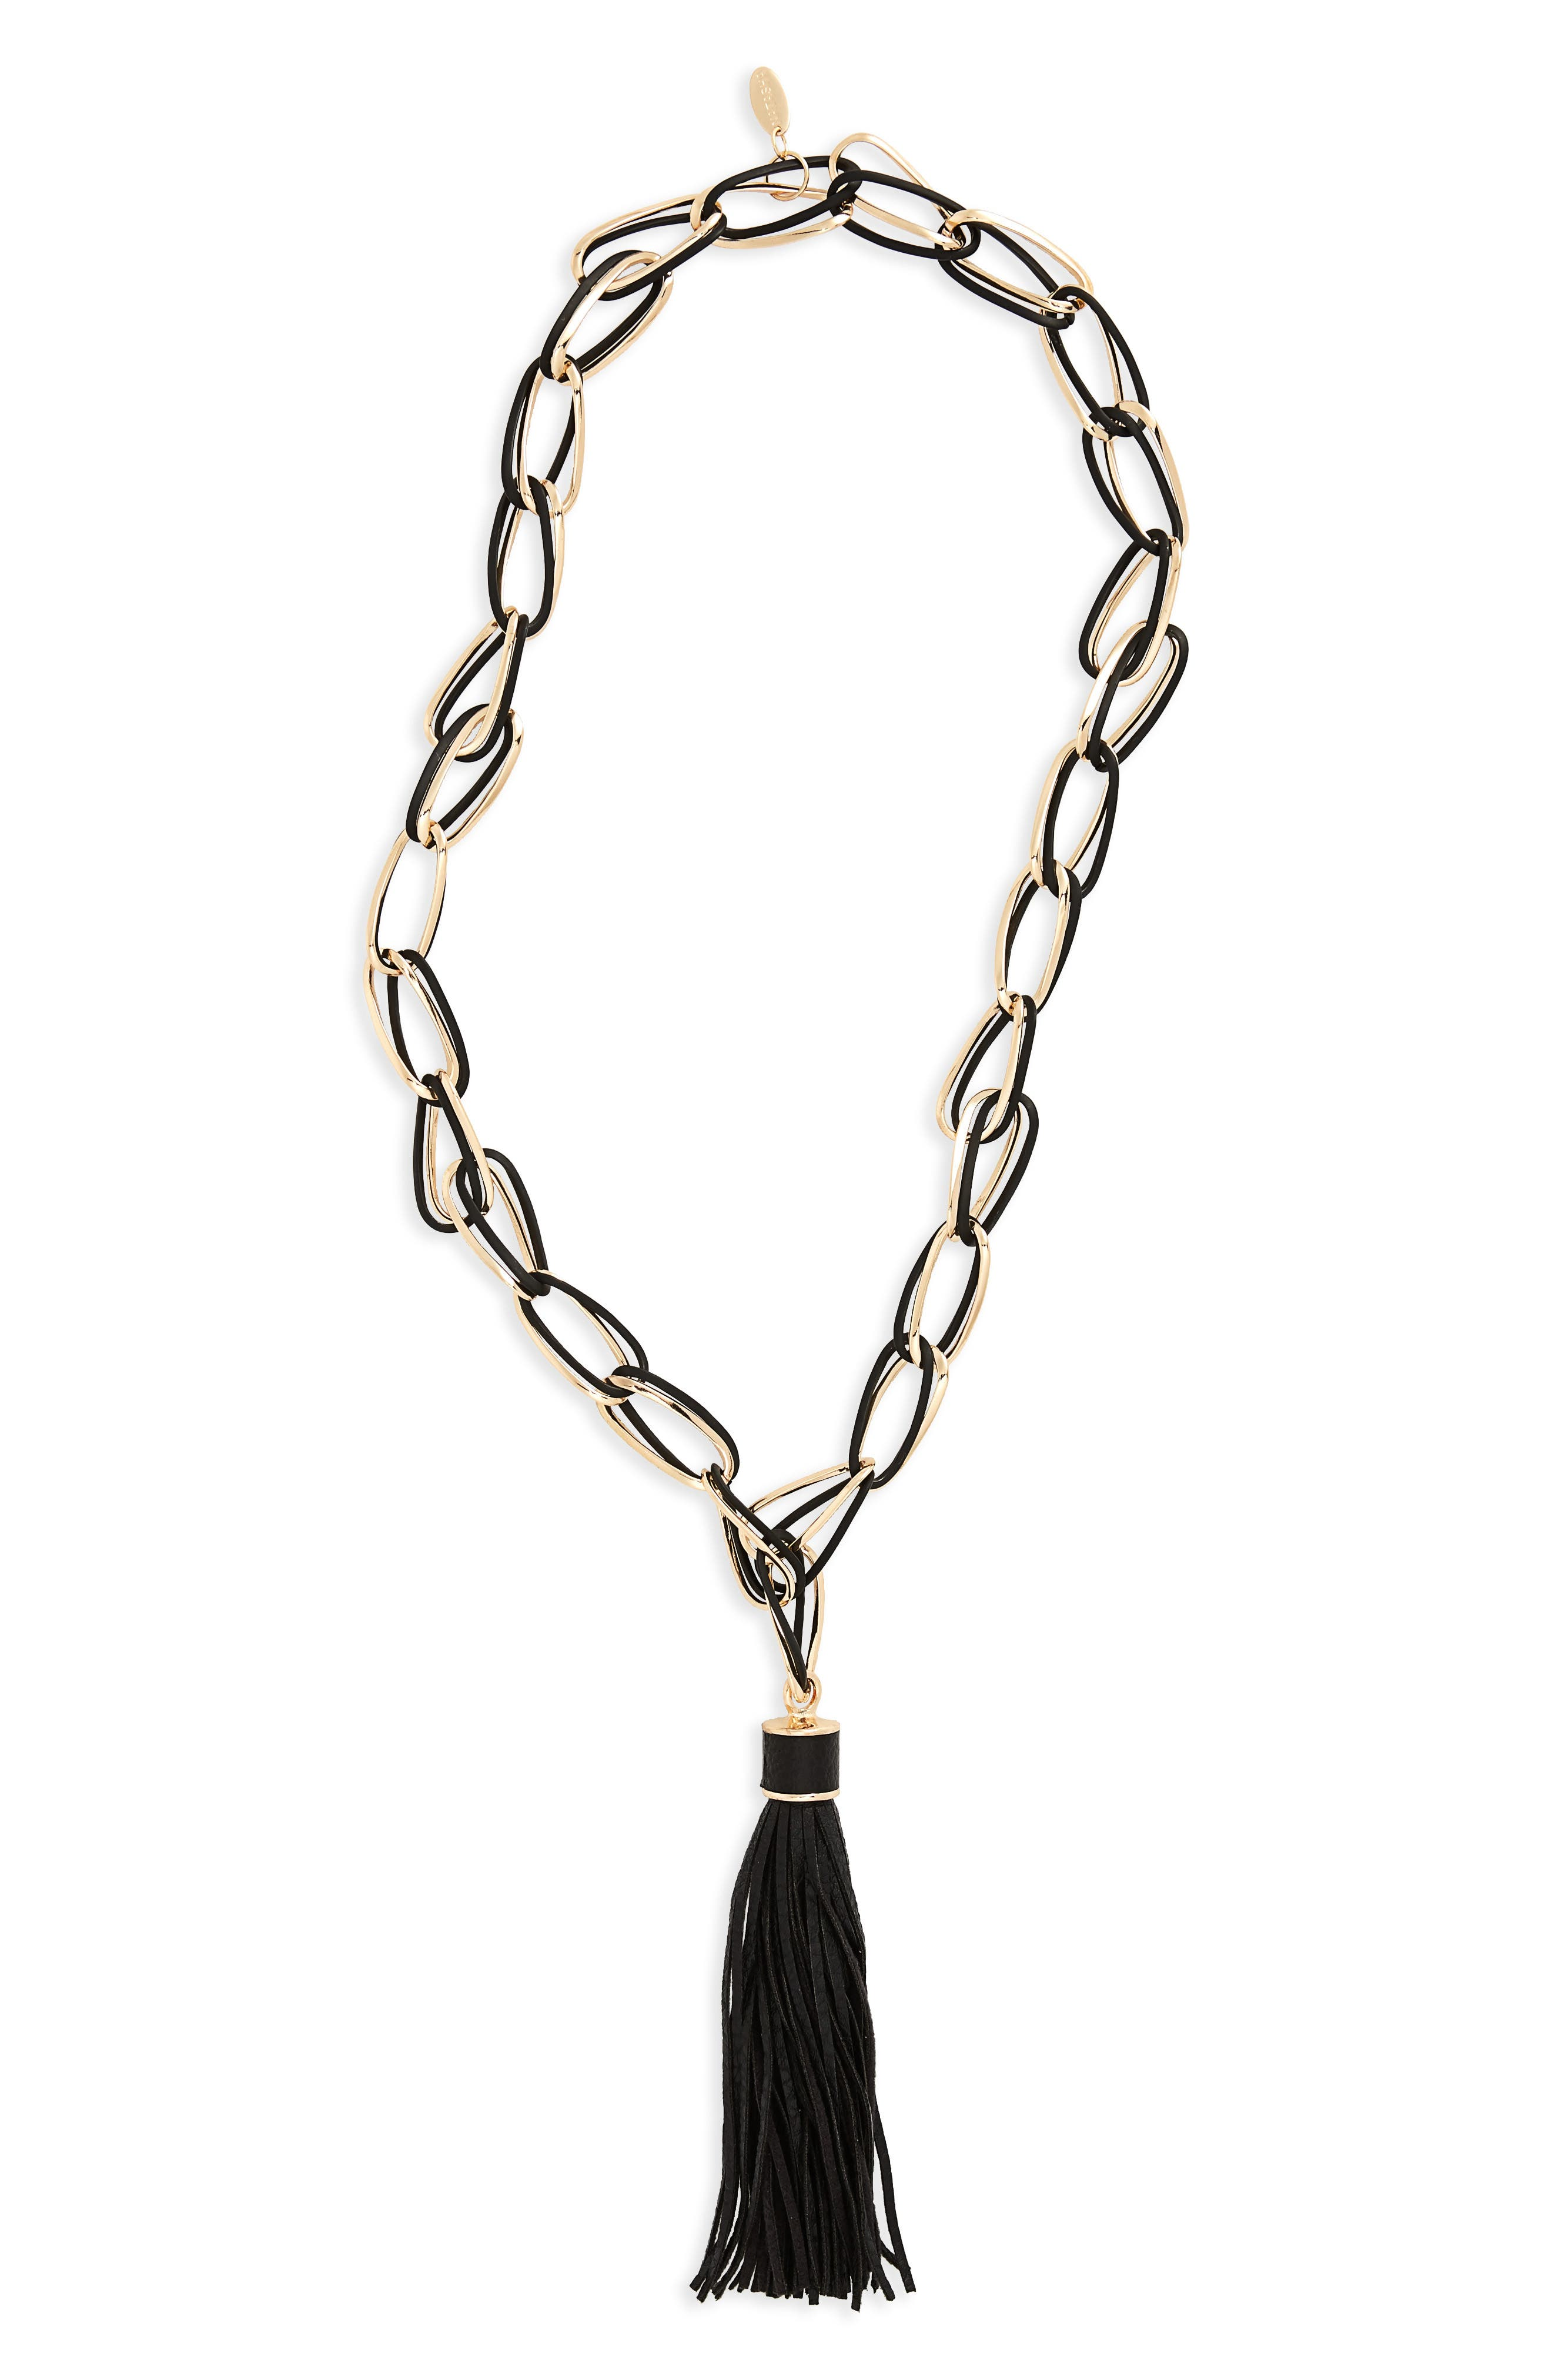 Link Tassel Necklace,                             Main thumbnail 1, color,                             Black/ Gold